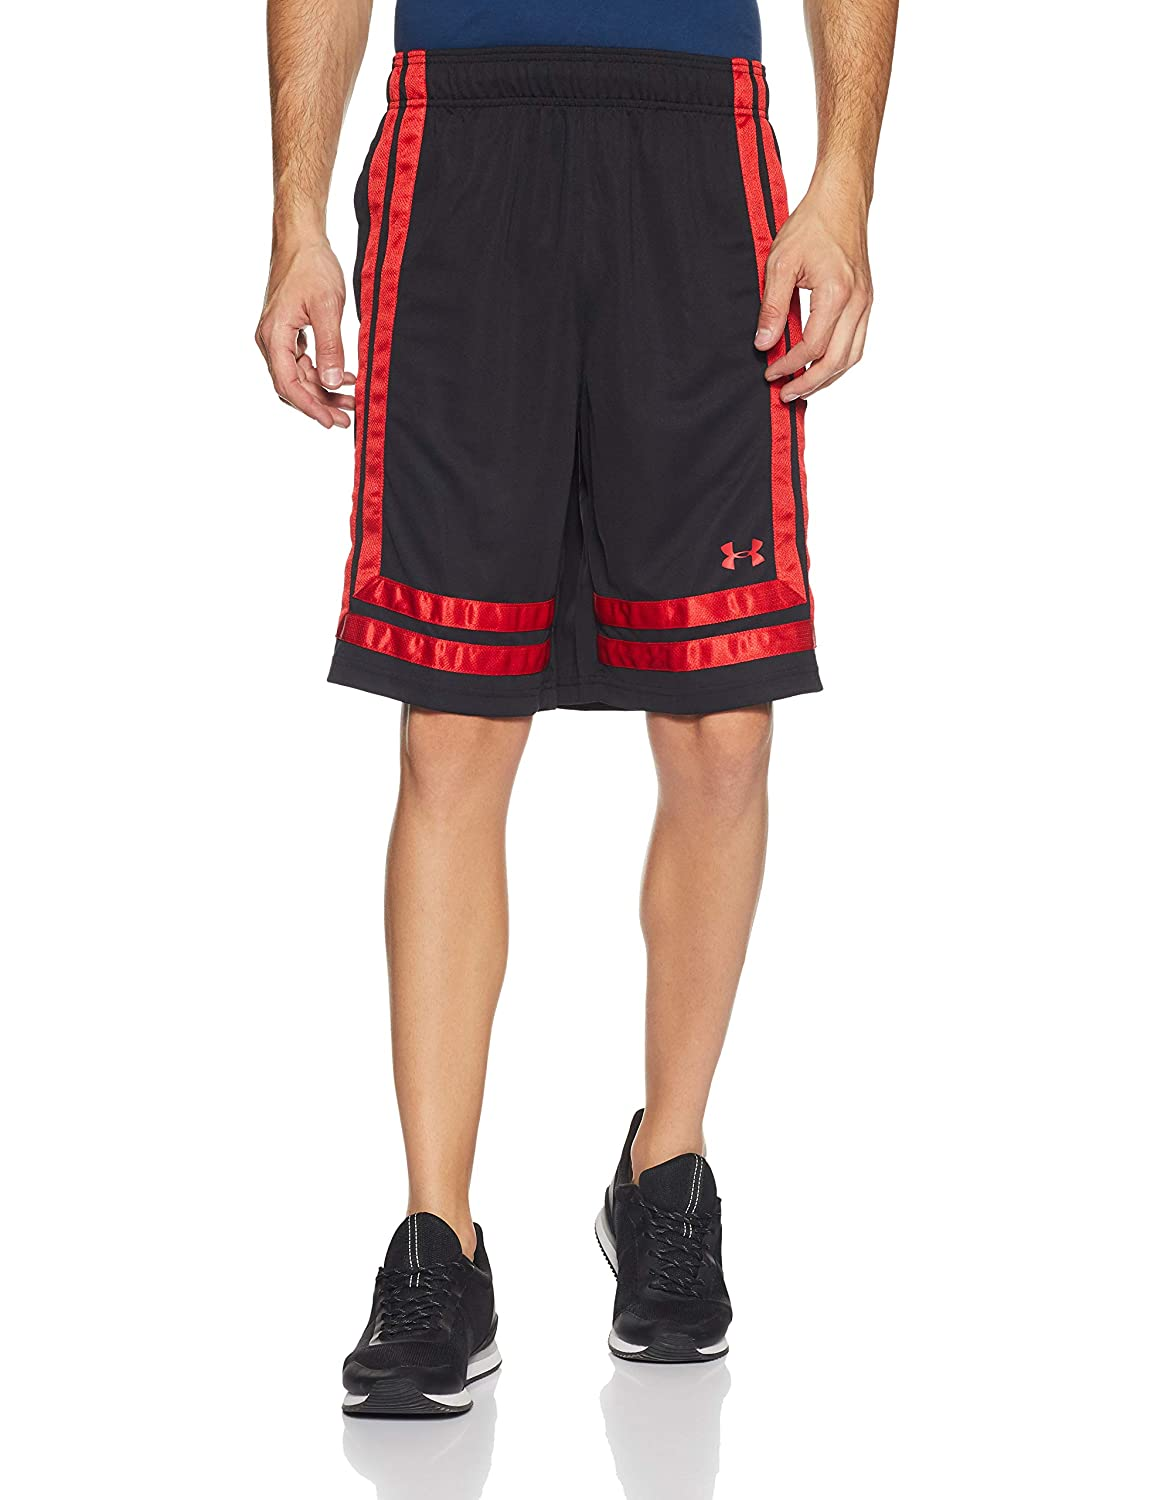 TALLA L. Under Armour UA Baseline 10in Short 18 Corto de Baloncesto, Hombre